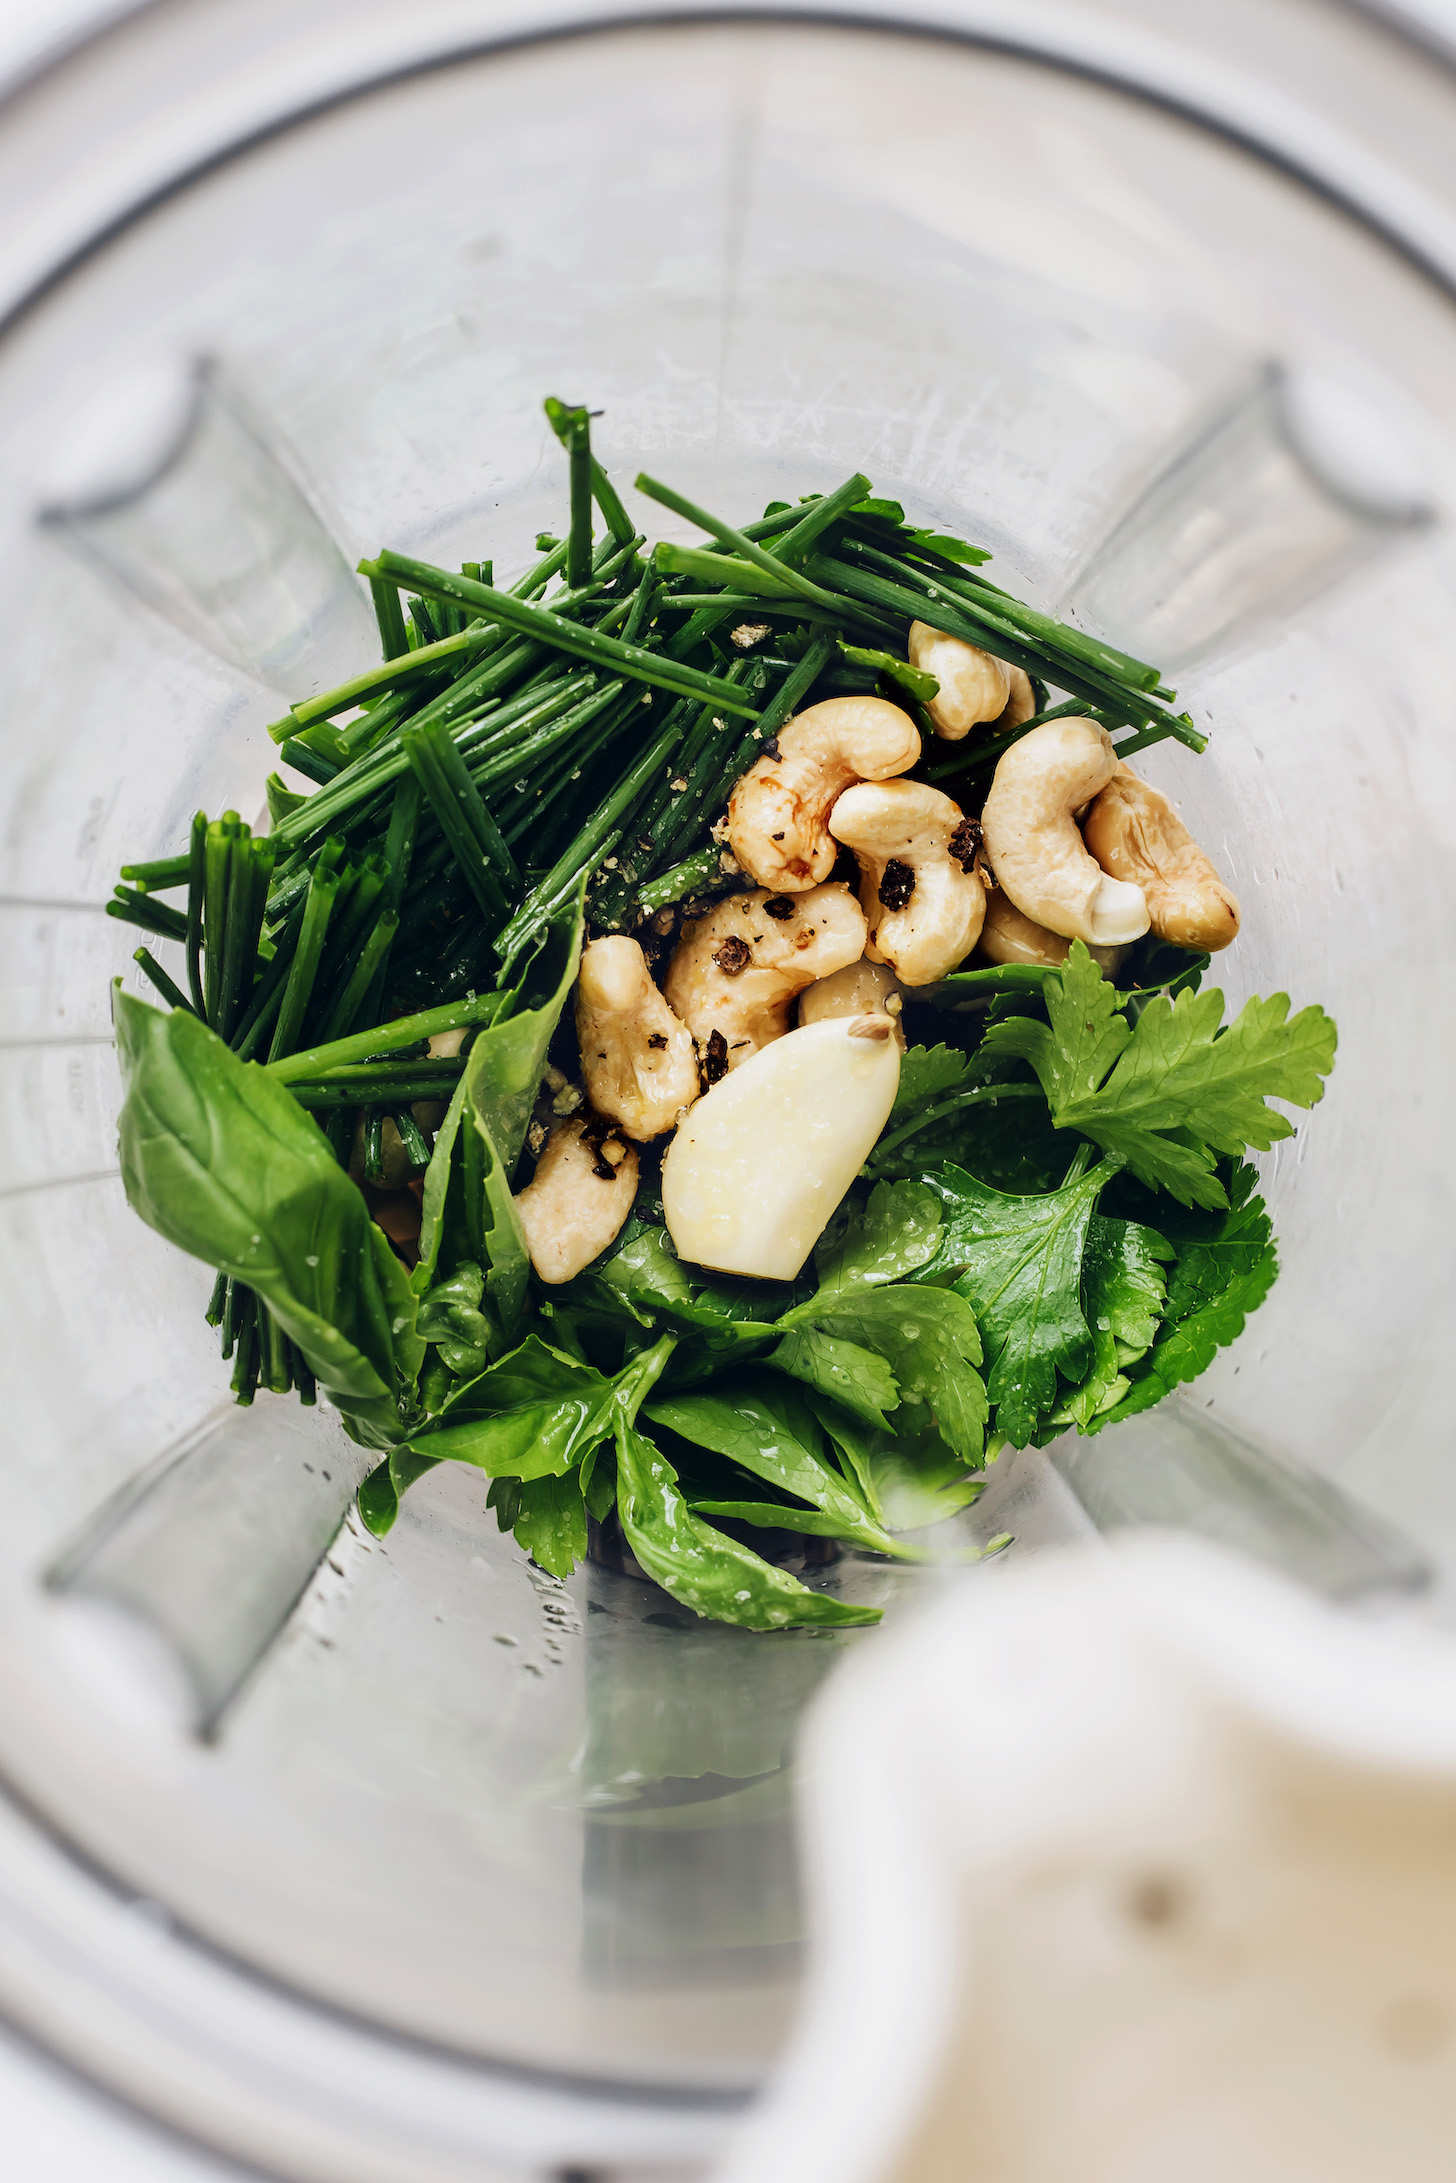 Blender with fresh herbs, cashews, garlic, and black pepper